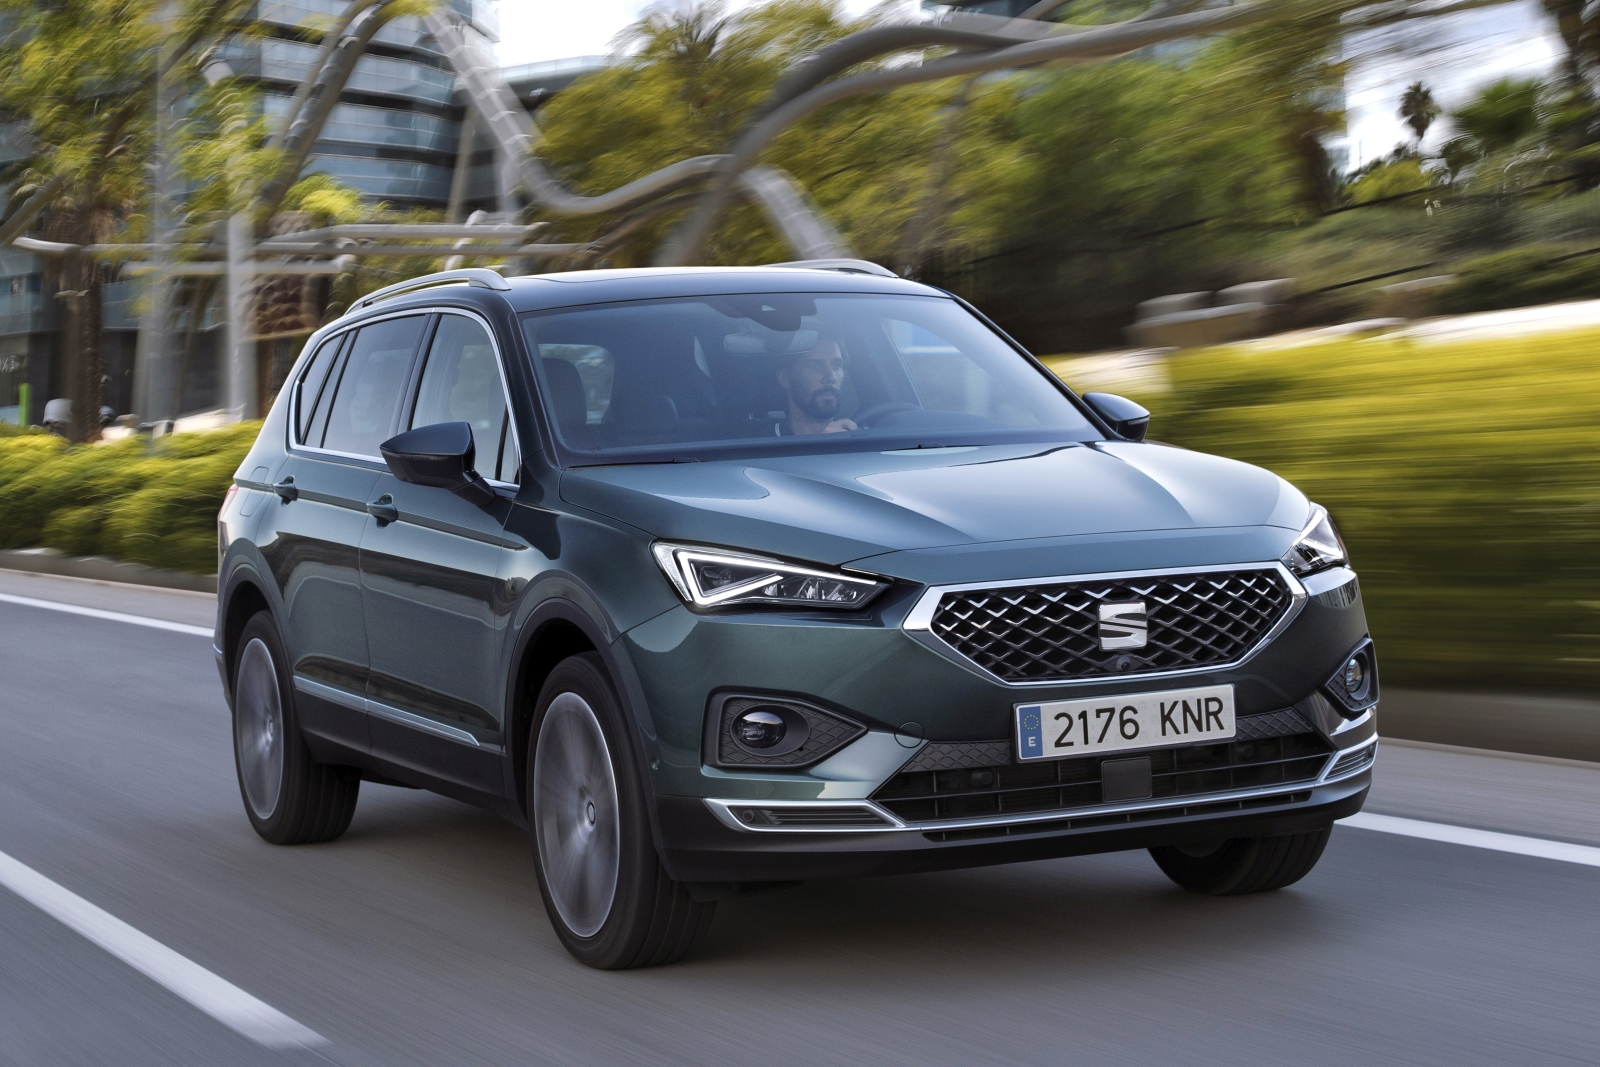 SEAT-expands-Tarraco-line-up-with-15-litre-TSI-DSG-Front-wheel-drive-option_01_HQ